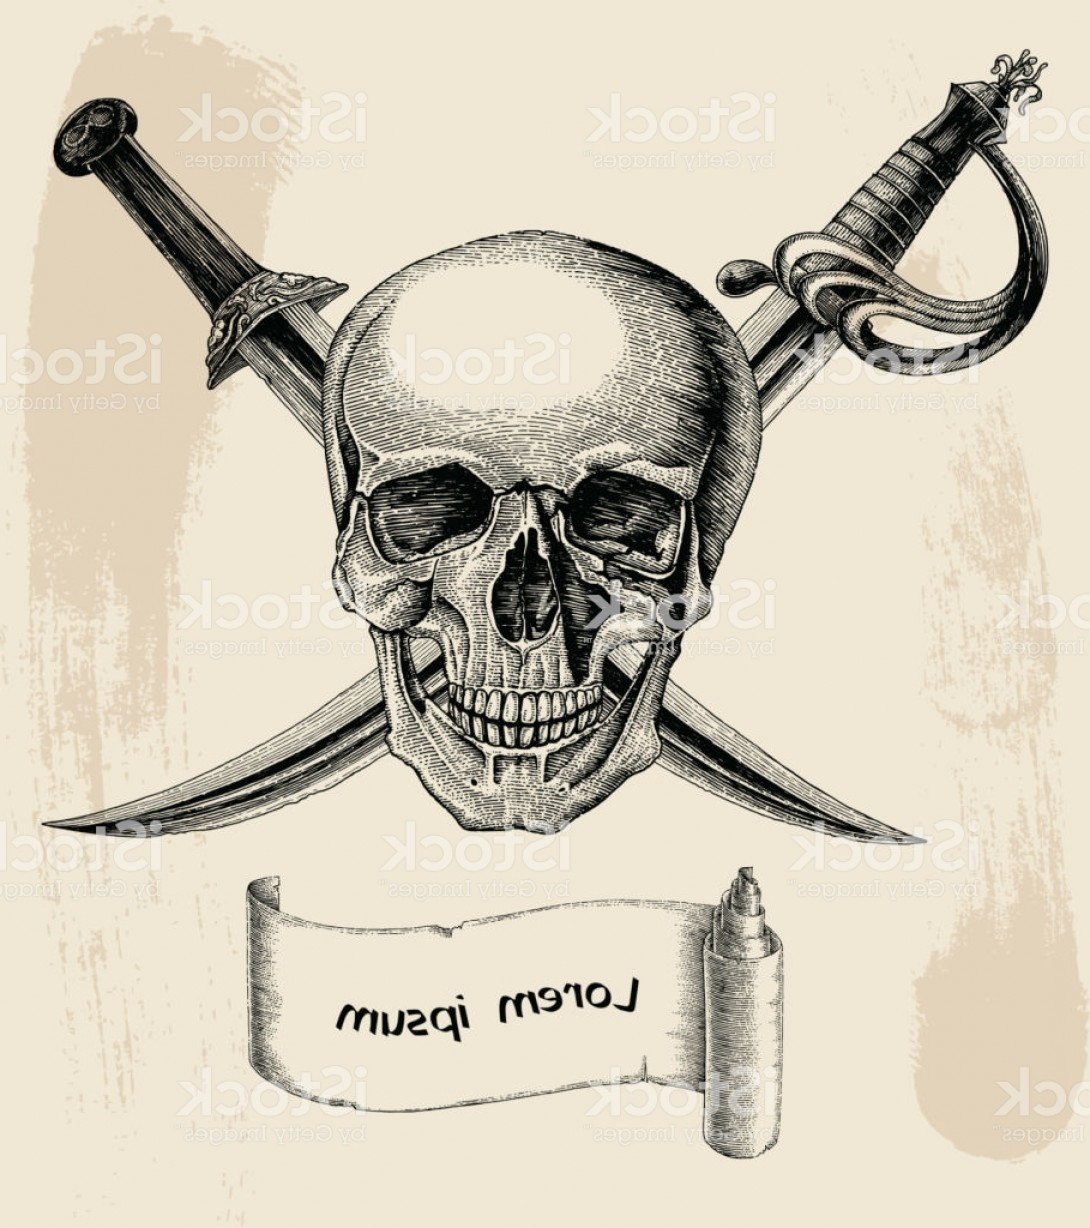 Pirate Swords Crossed Vectors: Skull With Crossed Swords Pirate Symbol Logo Hand Drawing Vintage Style With Banner Gm